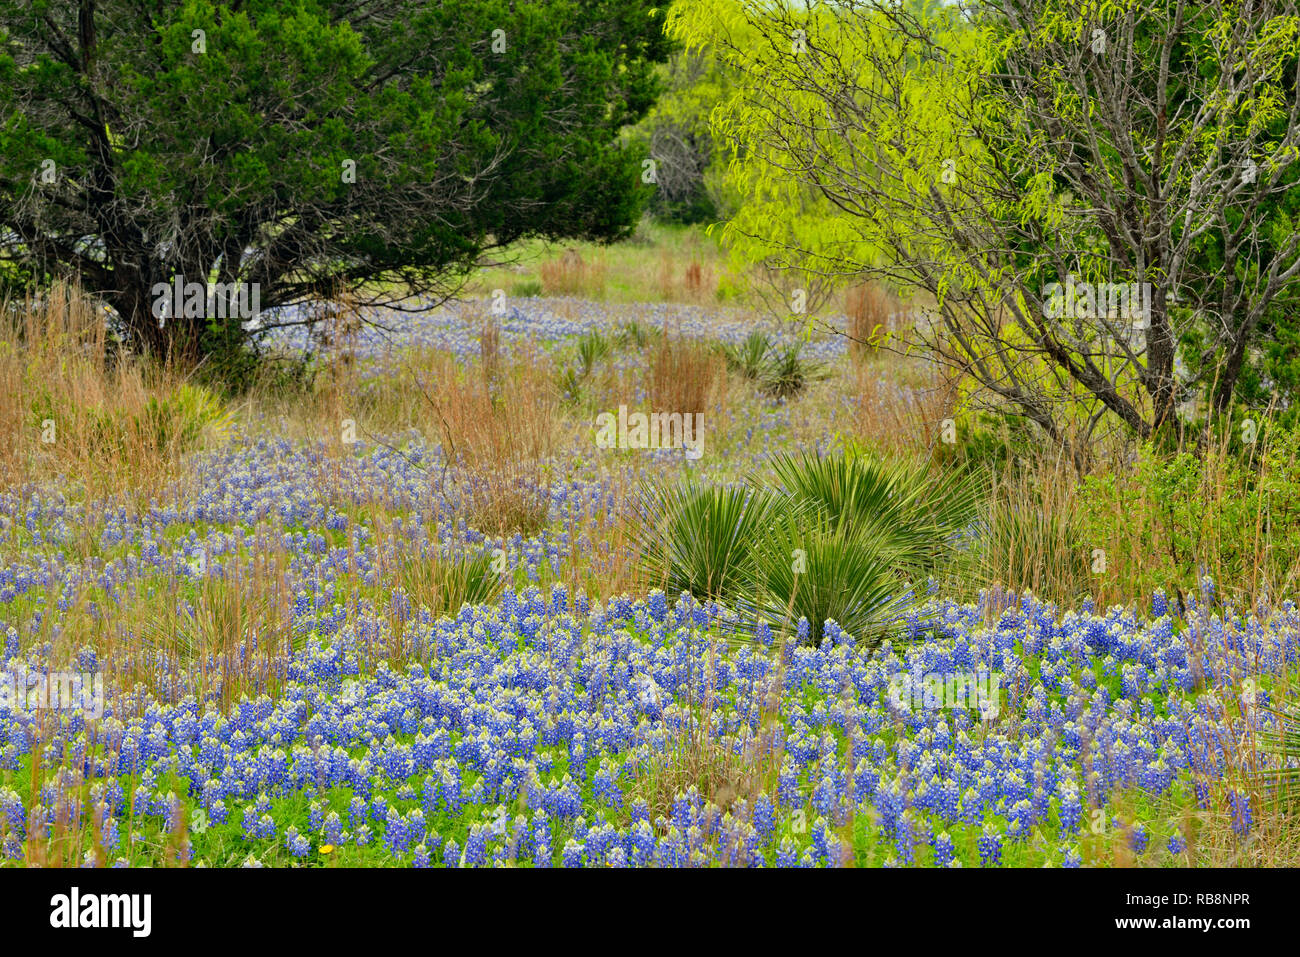 Texas bluebonnets in a field with spring trees, Burnet County, Texas, USA - Stock Image